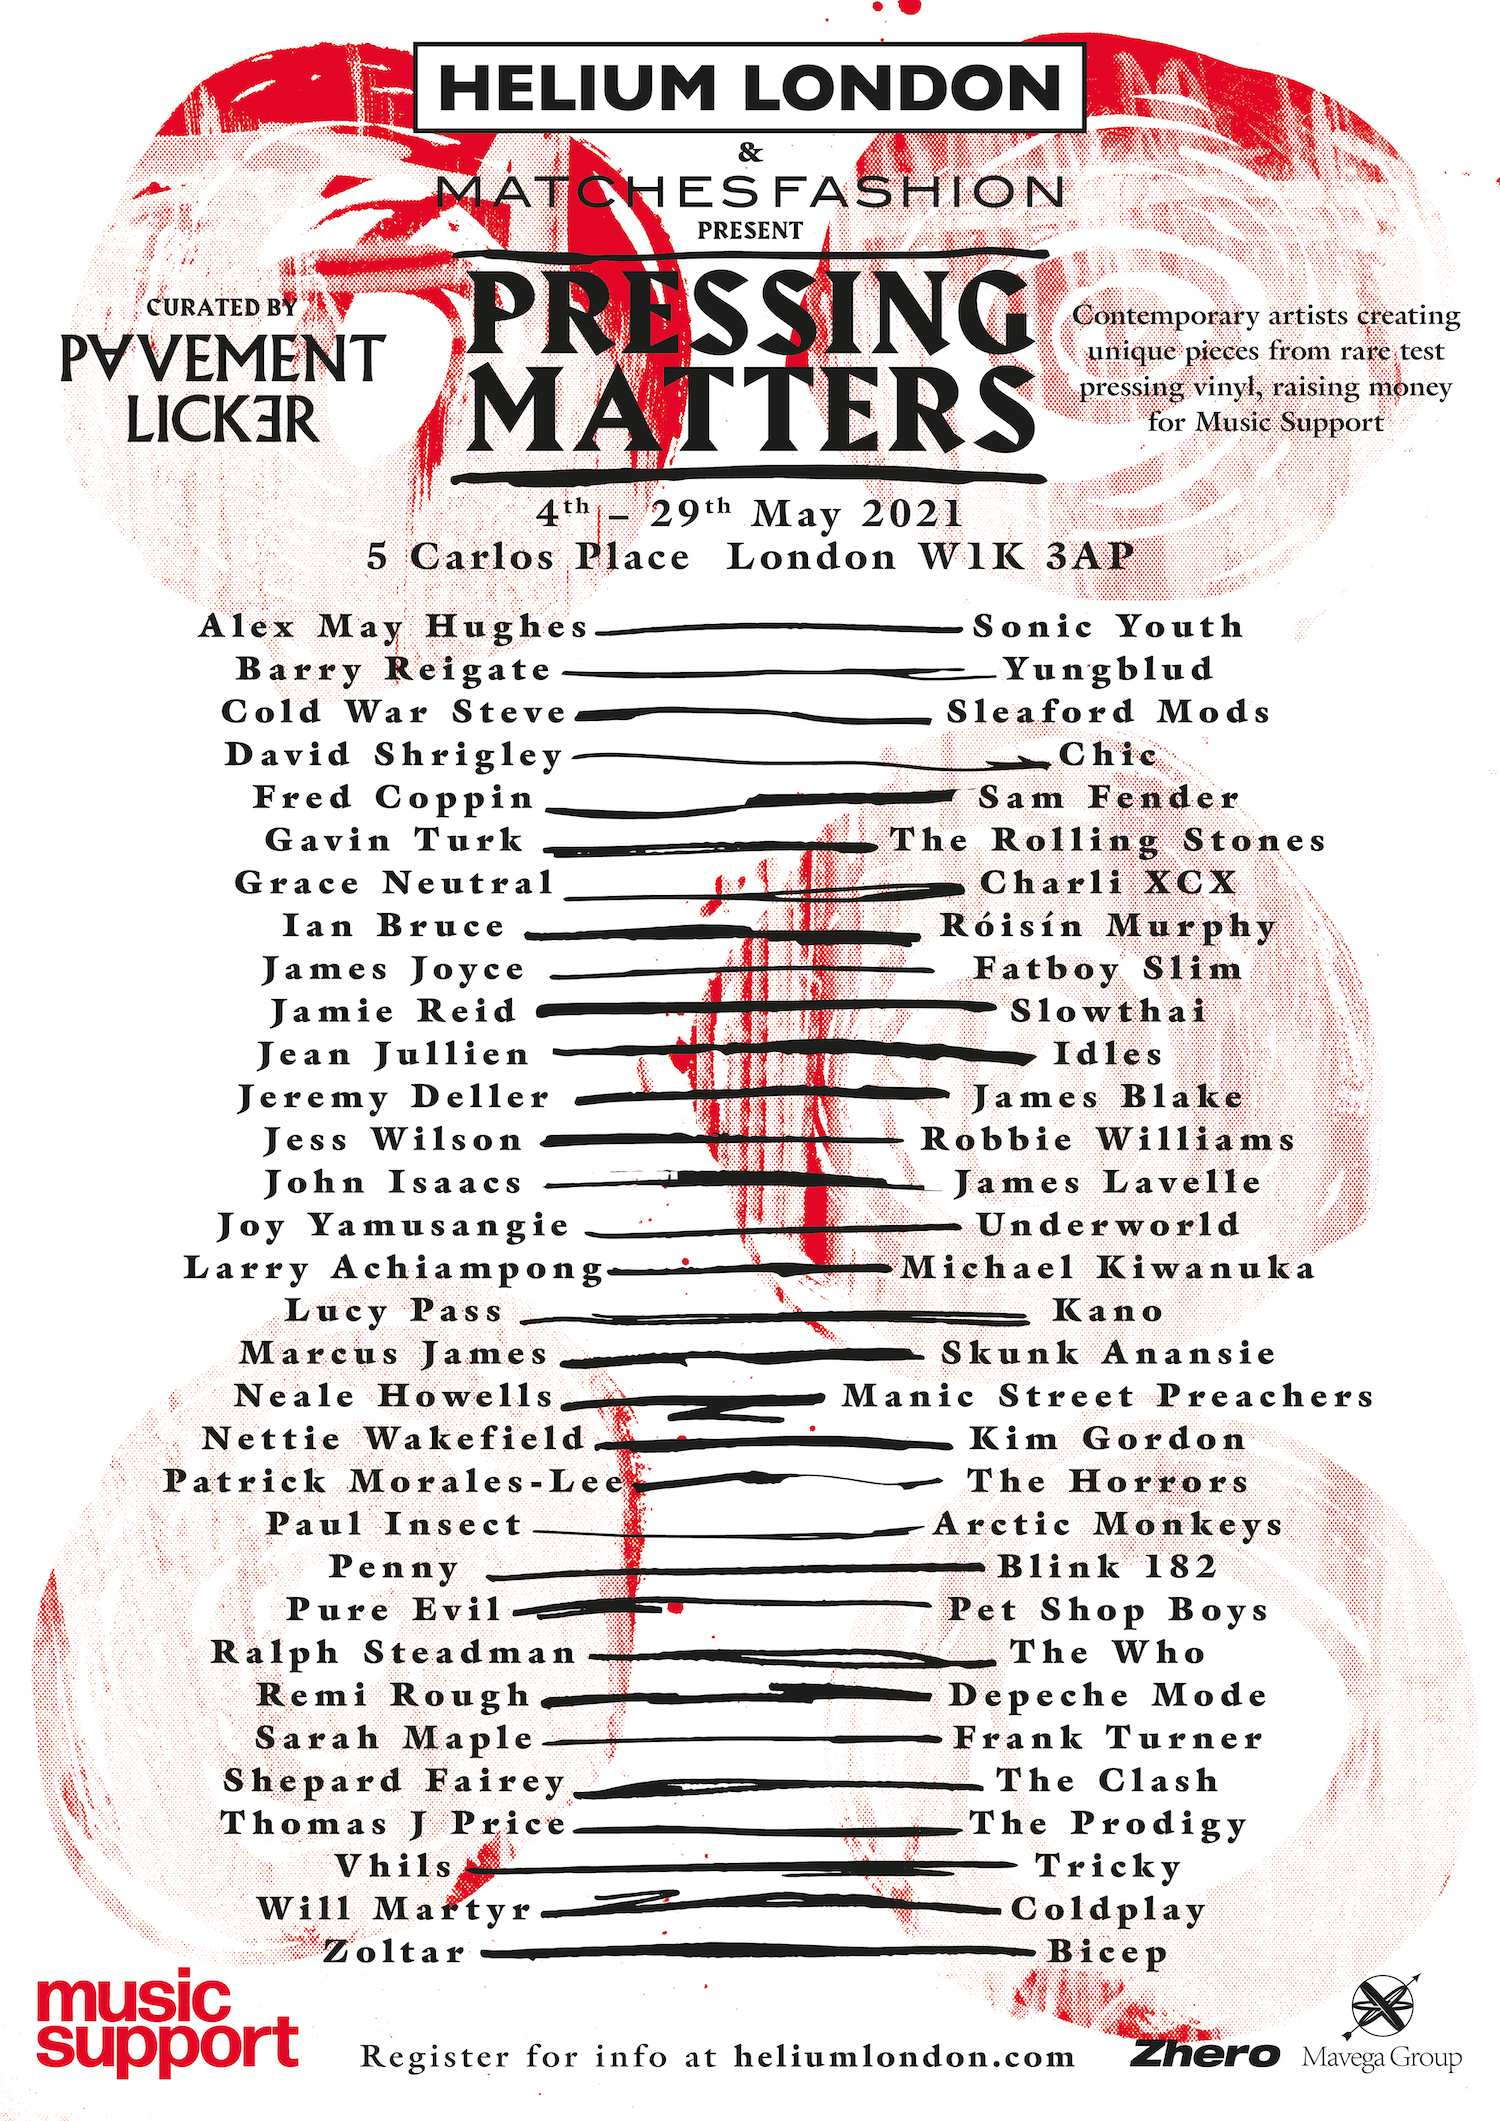 Poster for Pressing Matters charity exhibition at Matches